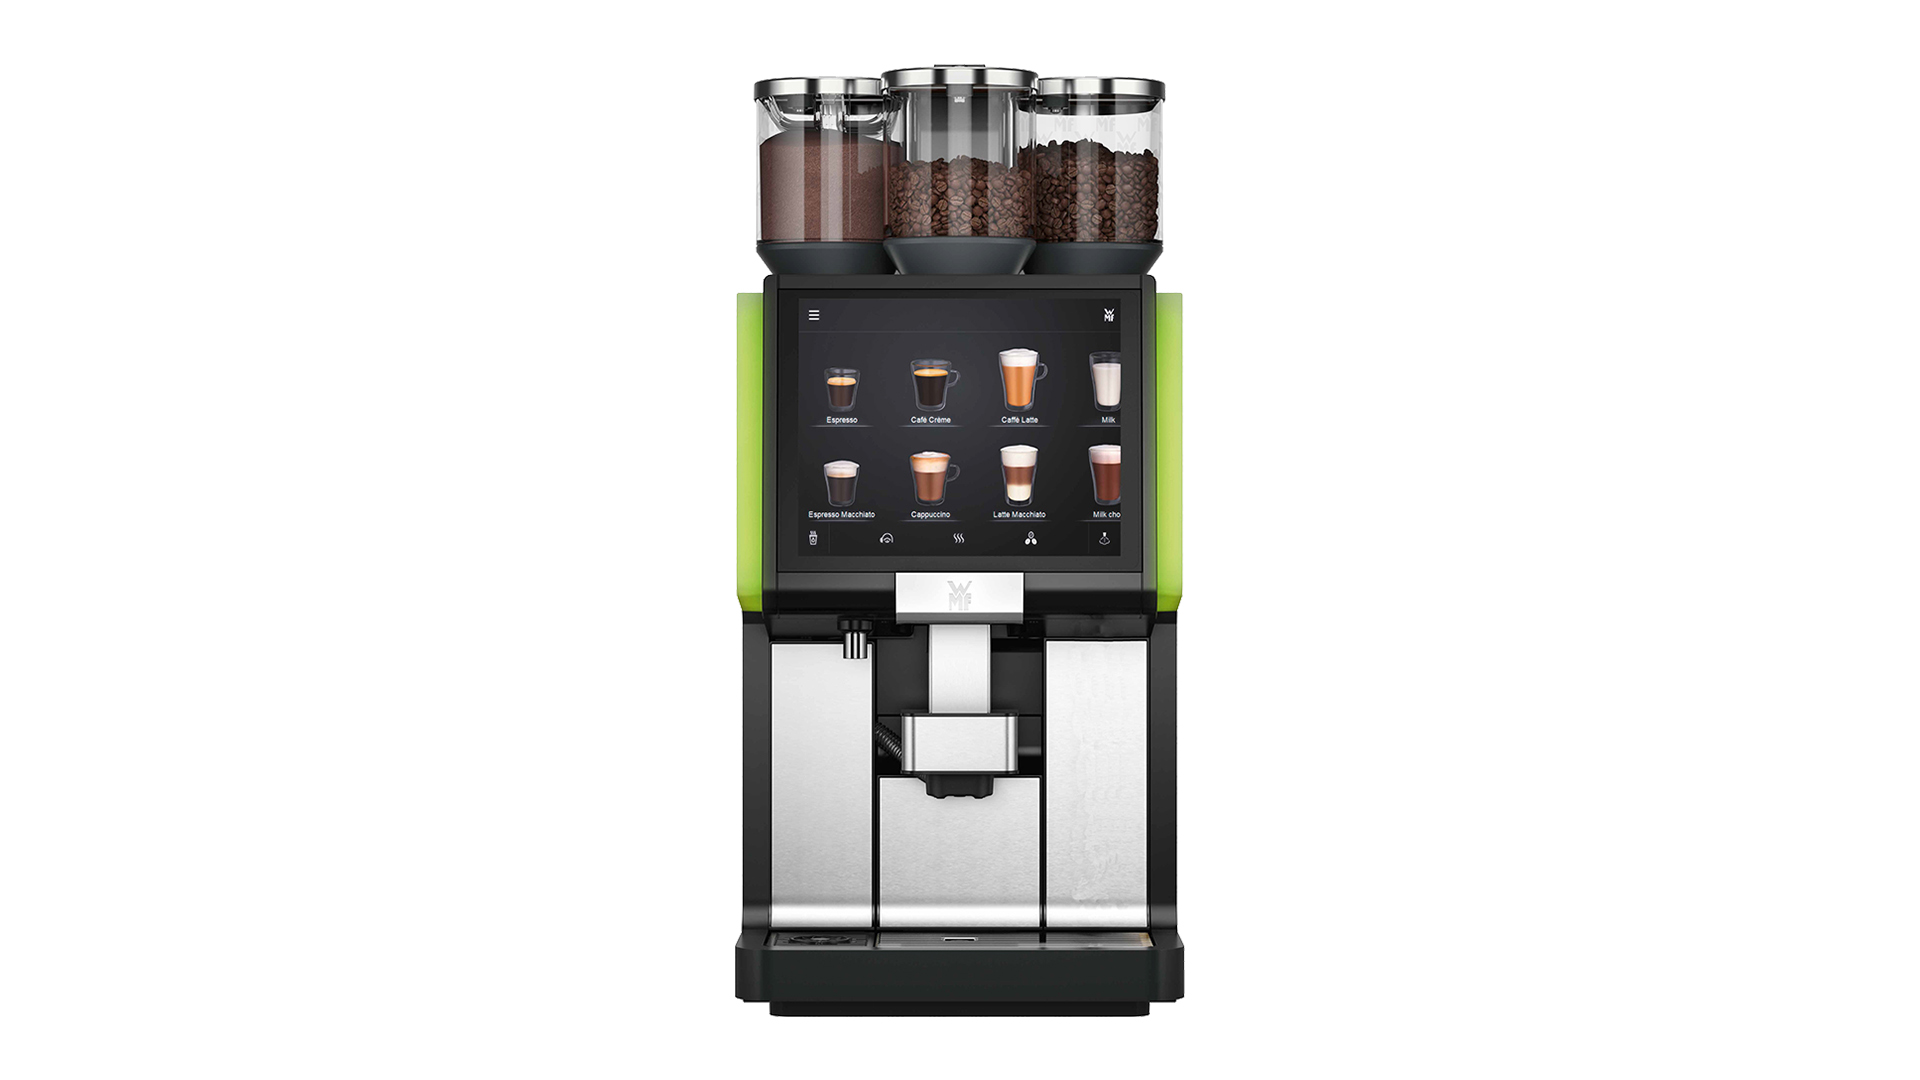 CAFETERA WMF 5000 S+ DYNAMIC MILK 2 MOLINOS CHOCOLATE